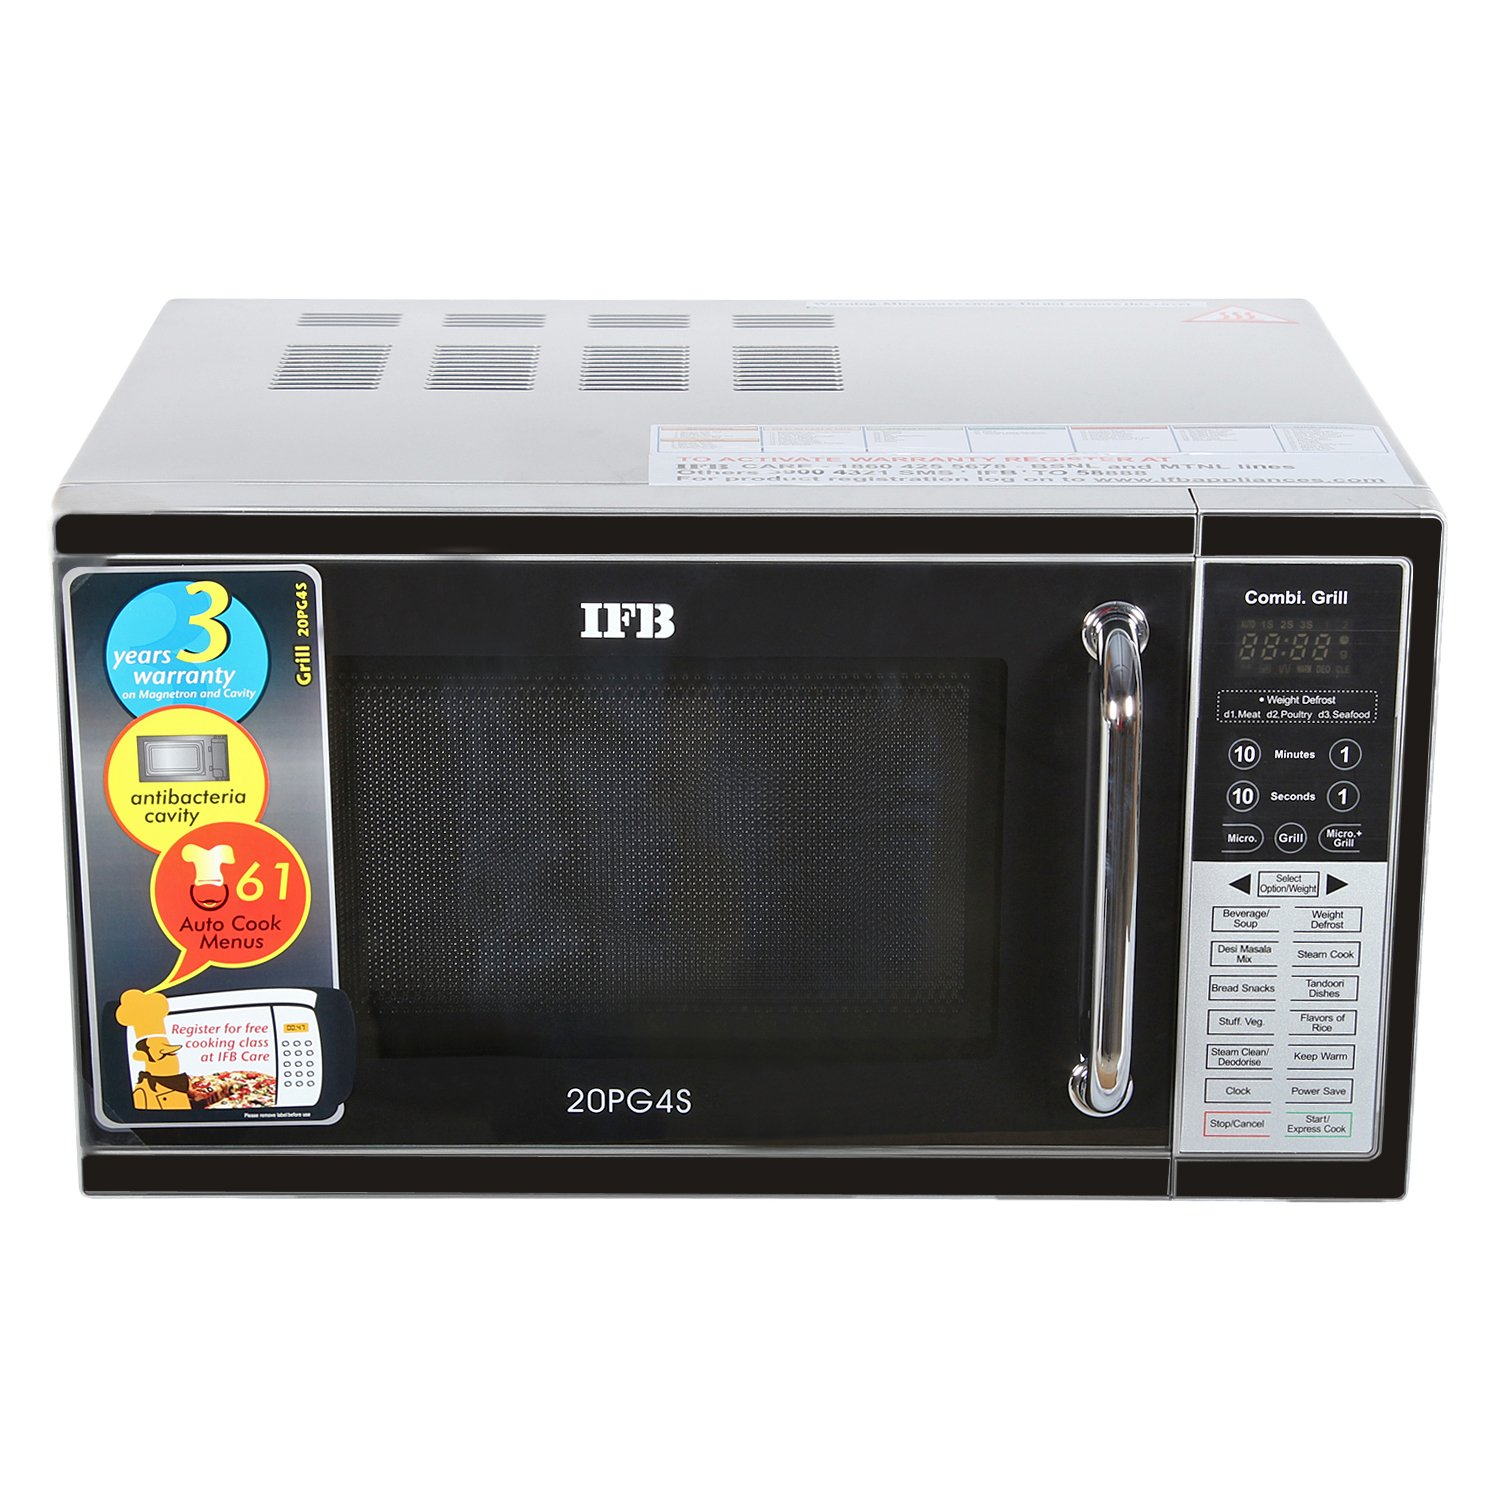 Best Microwave Oven In India 2019 Under 10000: Top 10 Best Microwave Ovens In India